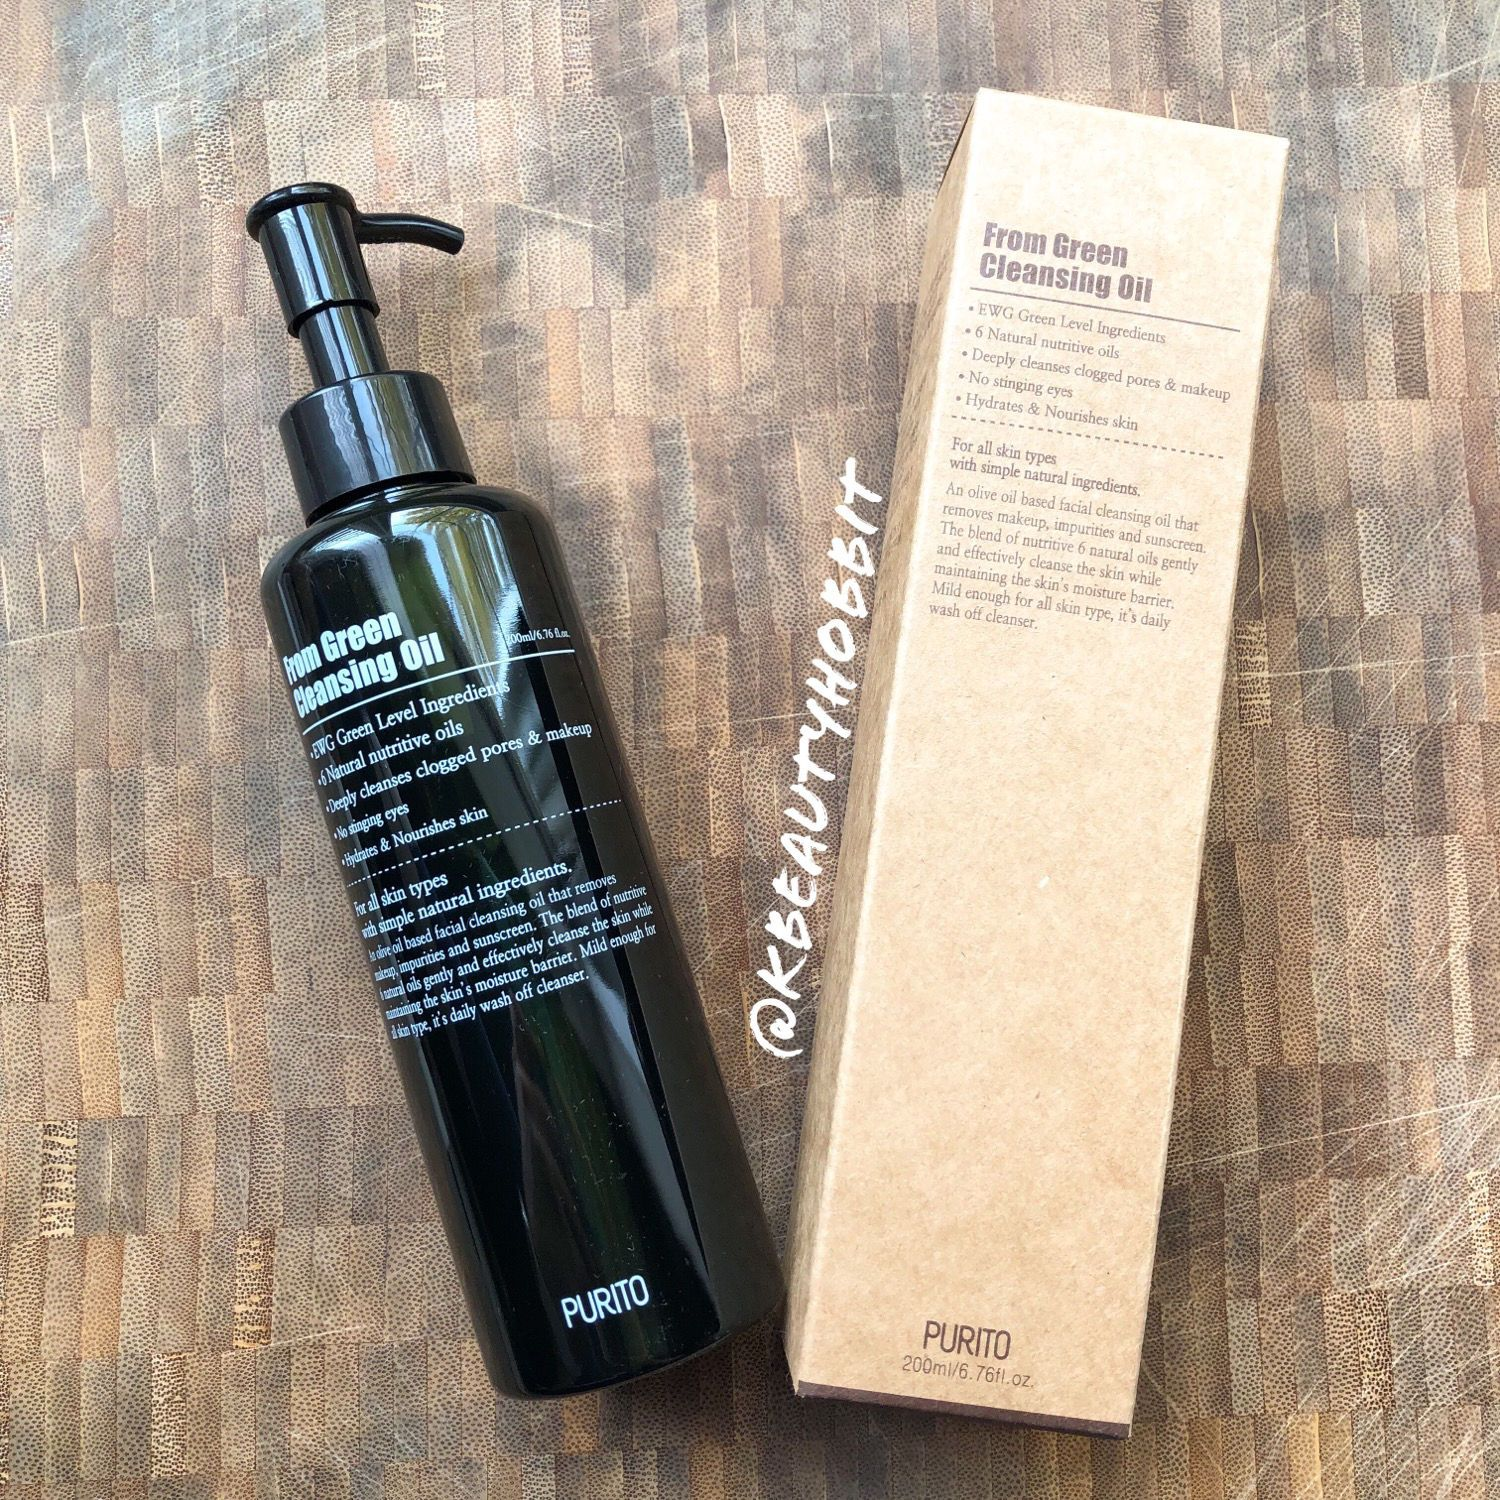 Purito From Green Cleansing Oil Review